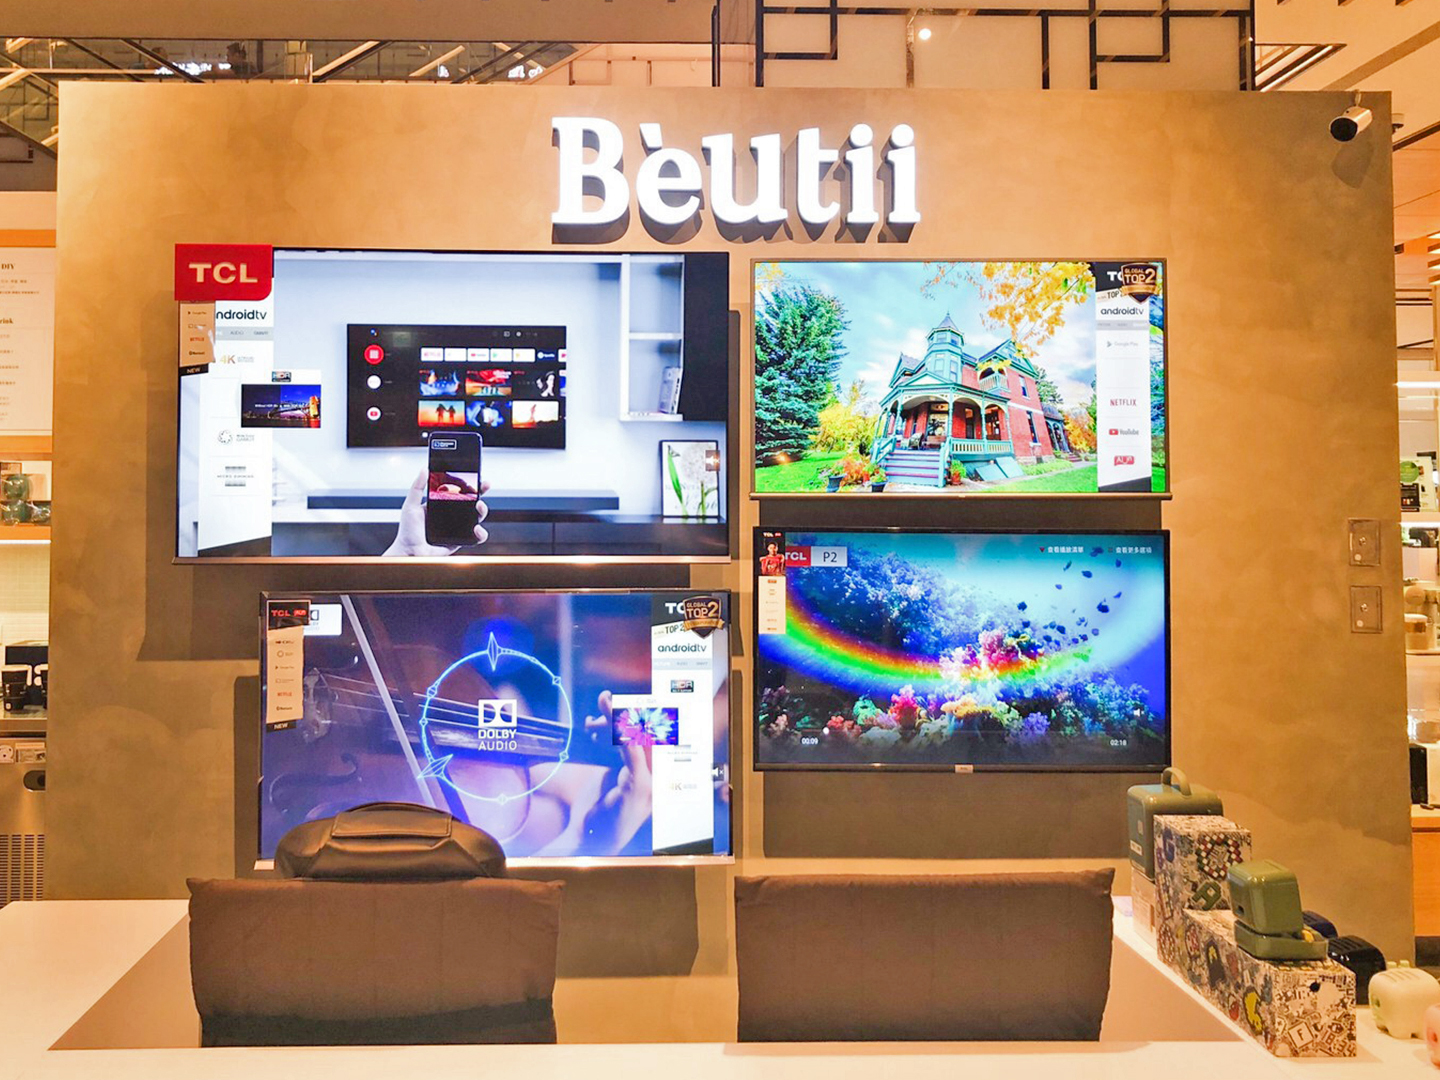 Beutii-新莊宏匯店